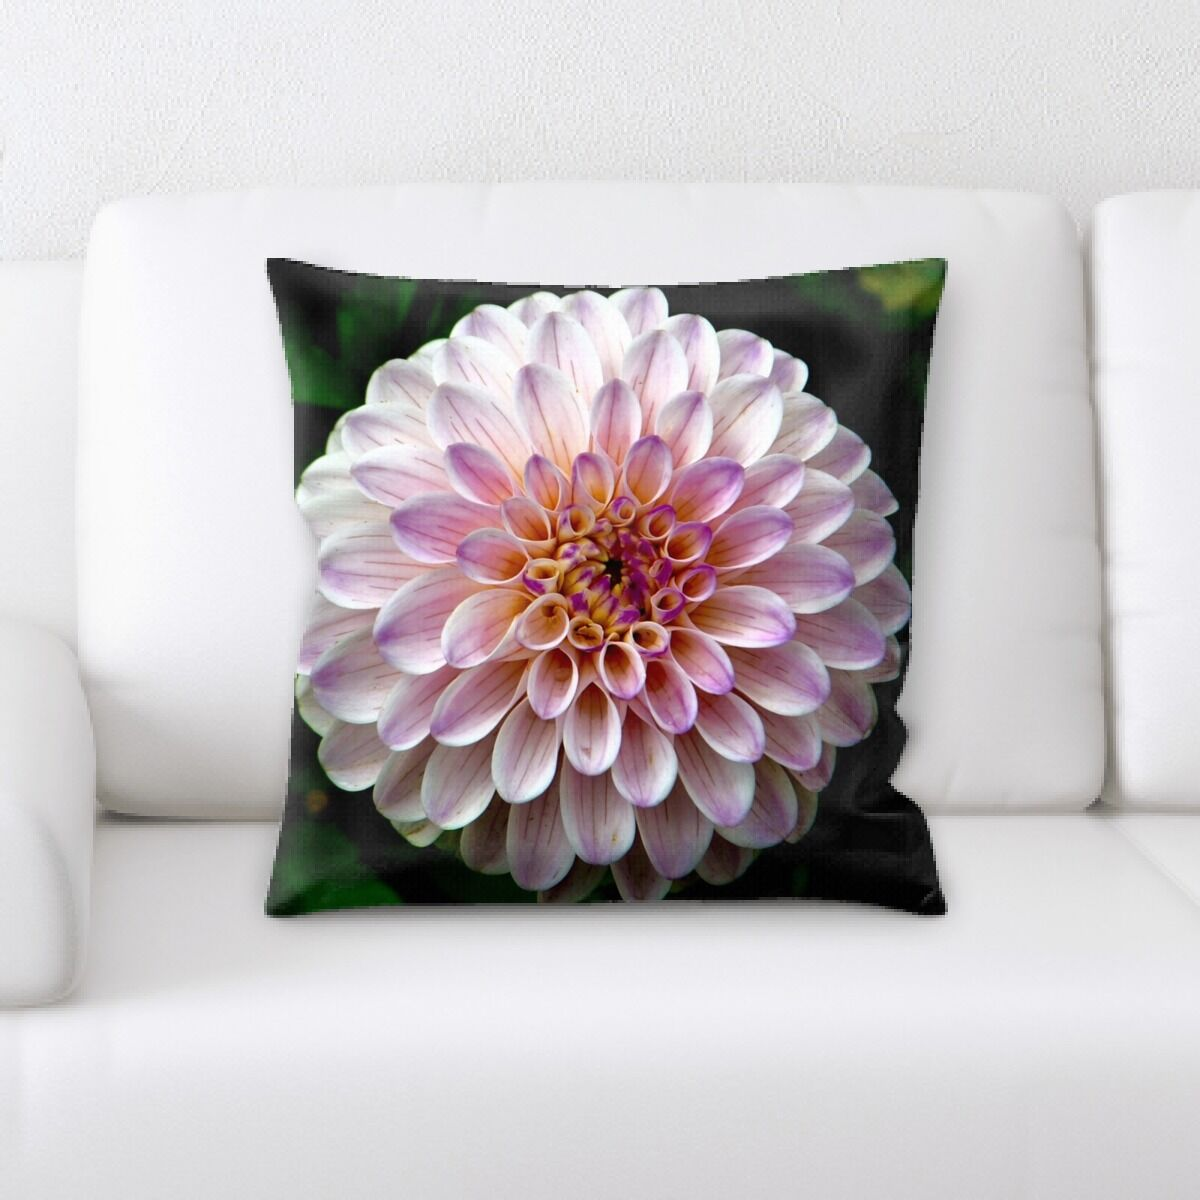 Small Meditation and Calming Moments (89) Throw Pillow